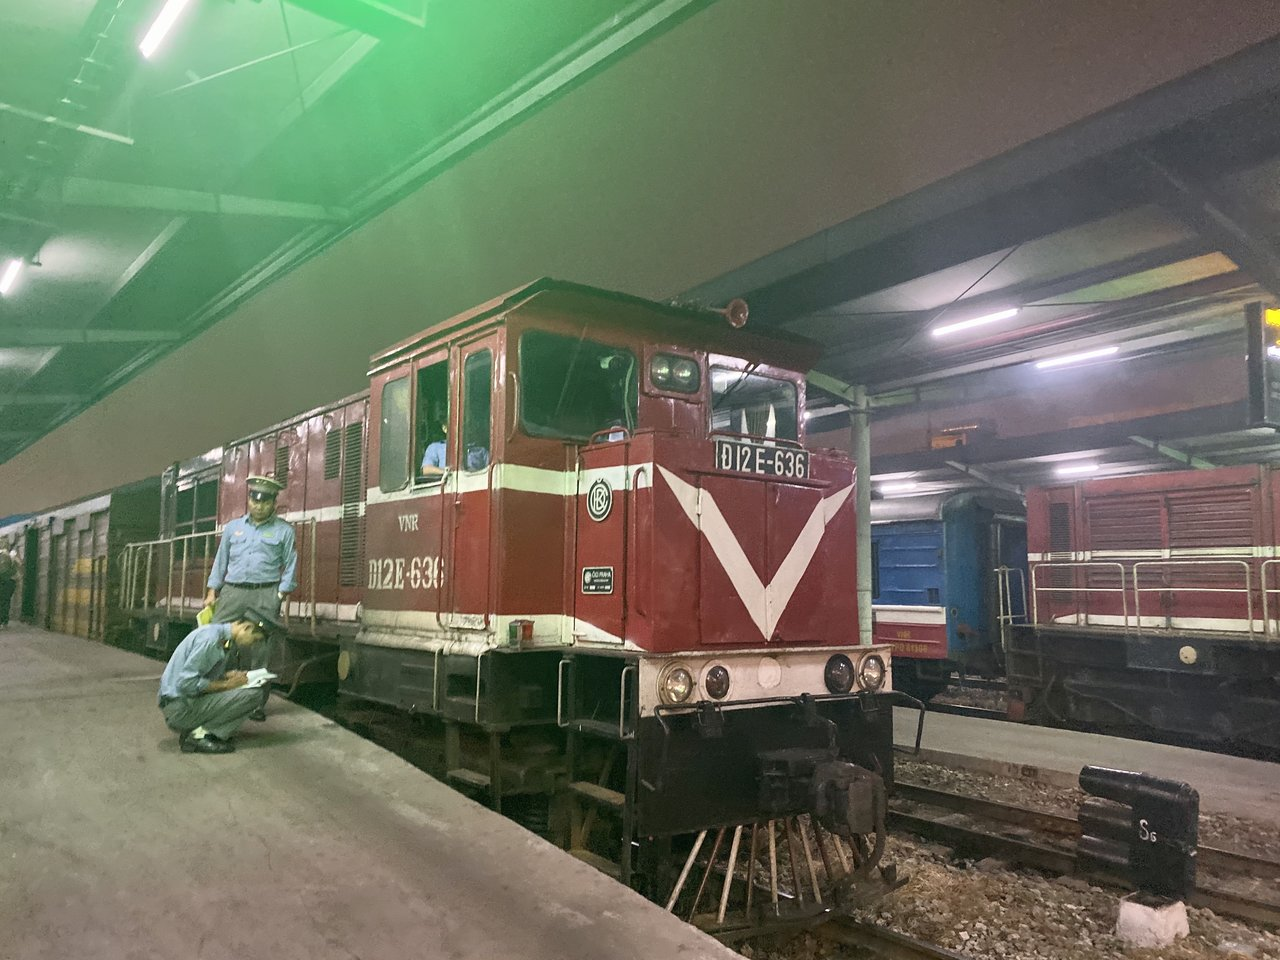 Our train is here to take us to Lao Cai! We can't wait to visit Sapa!   Photo taken by Su-Lin T